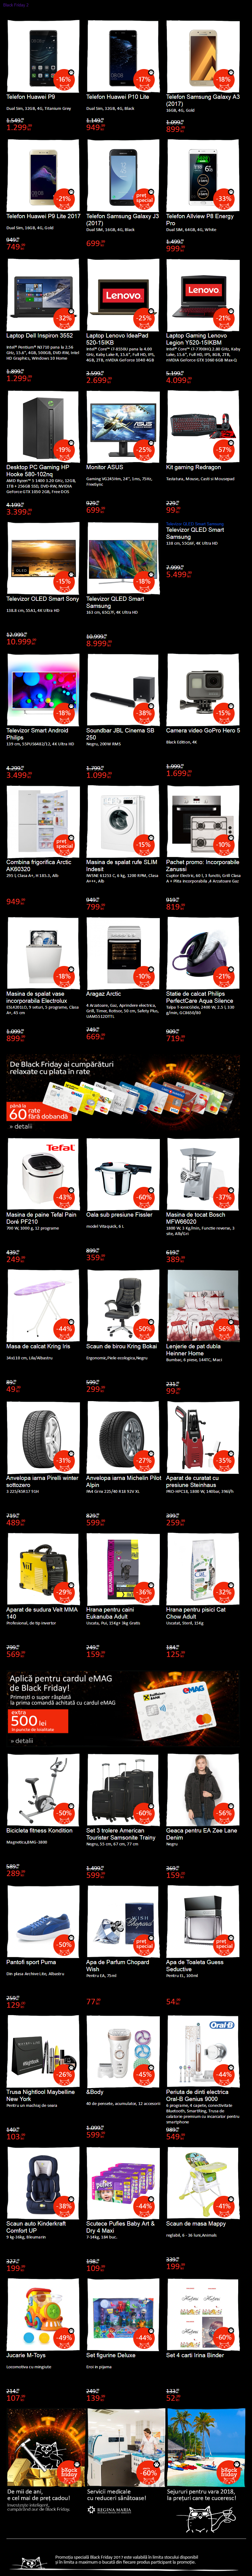 emag catalog reduceri valul 2 black friday